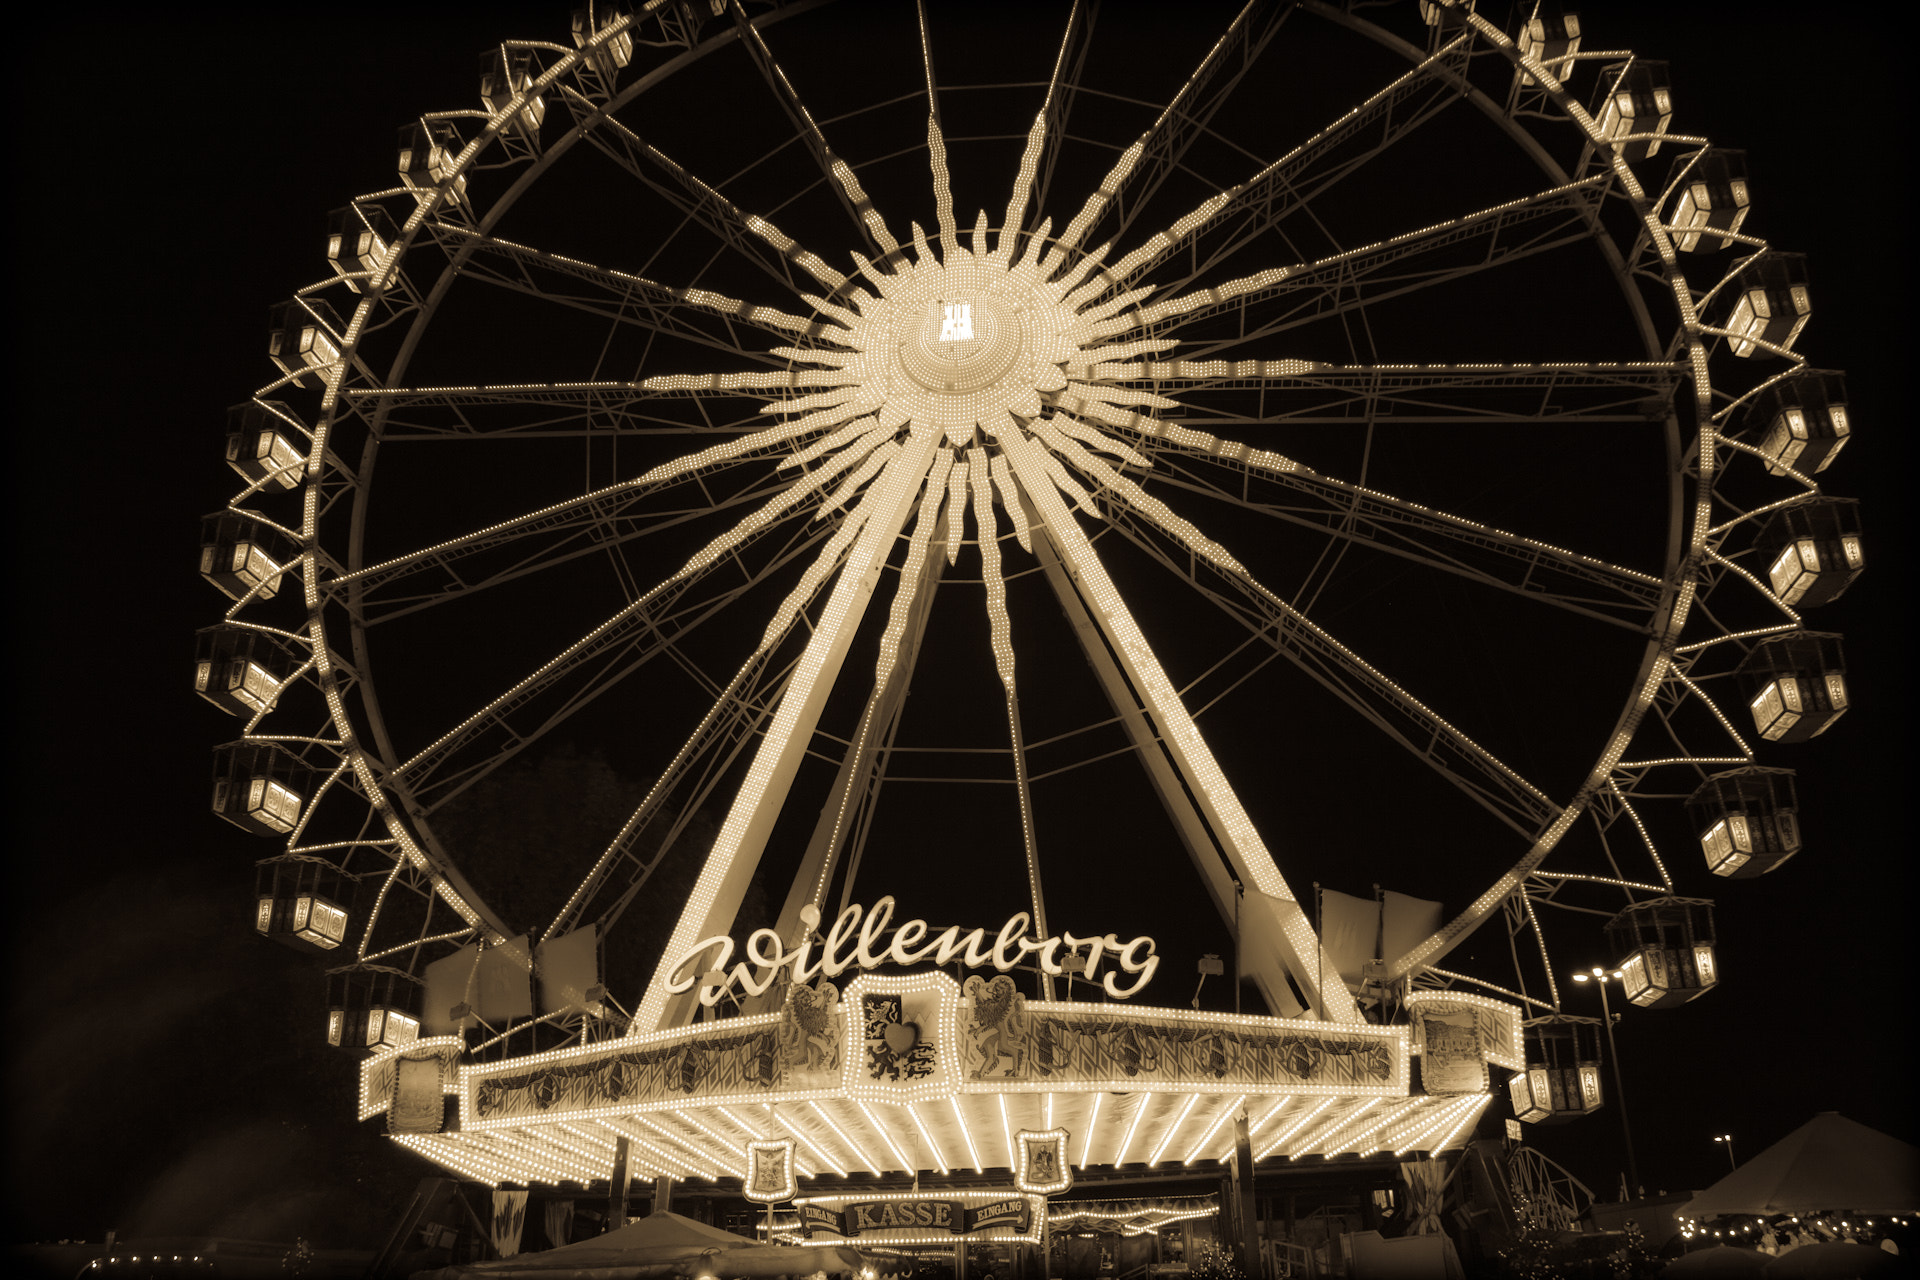 Photograph The fair | The Ferris wheel. by Jan Lange on 500px